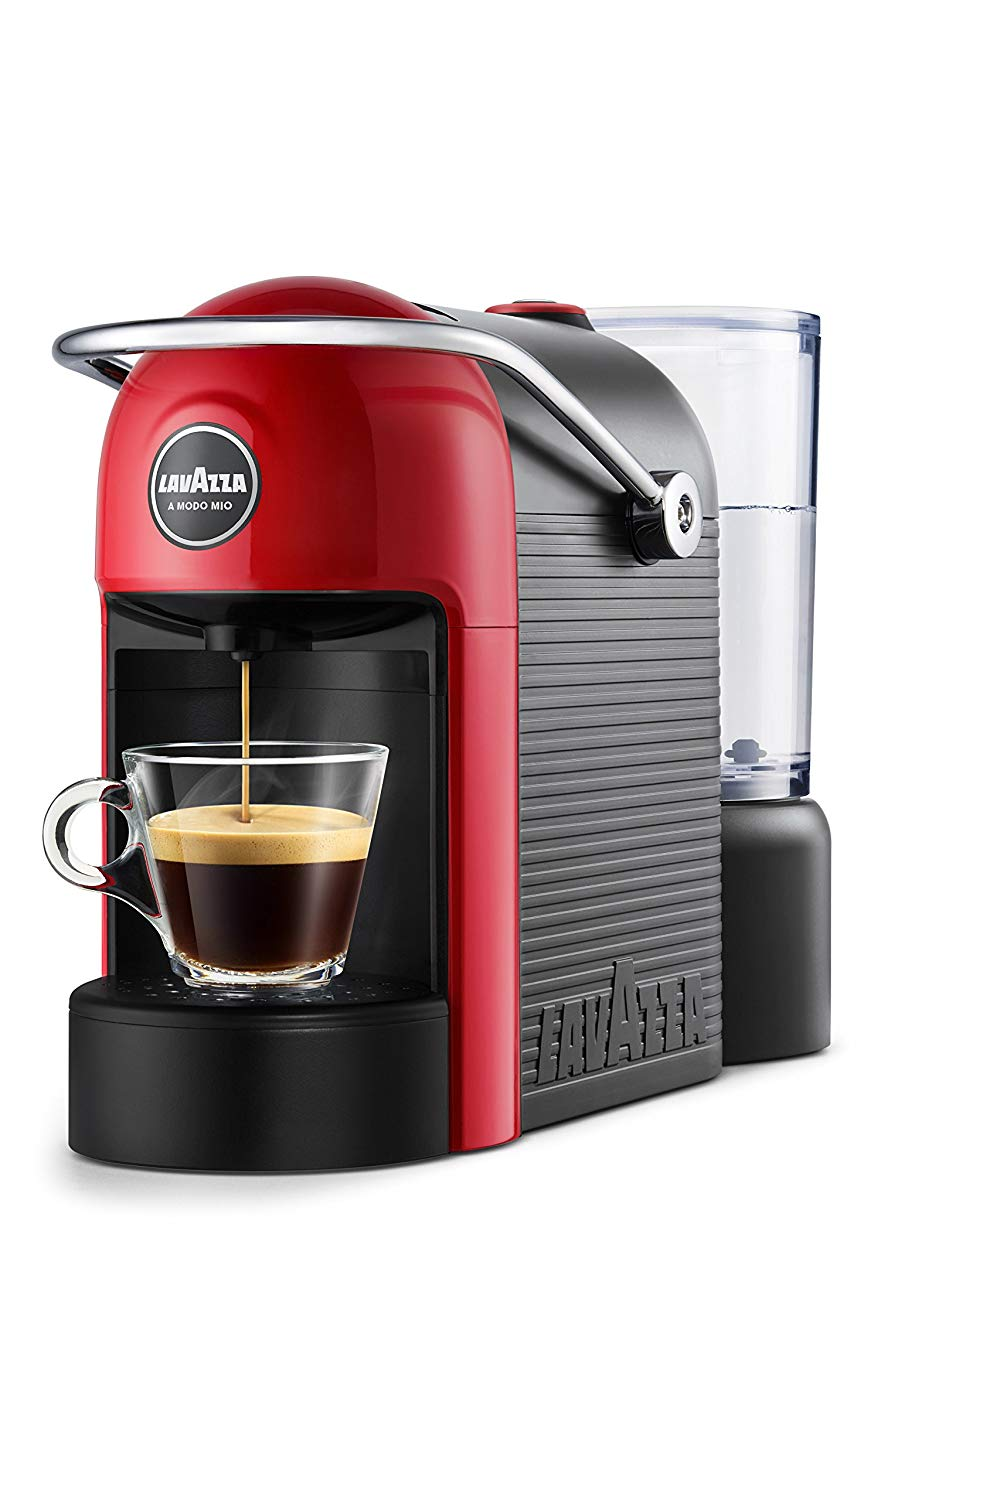 Lavazza Kapselmaschine Kaffee amazon